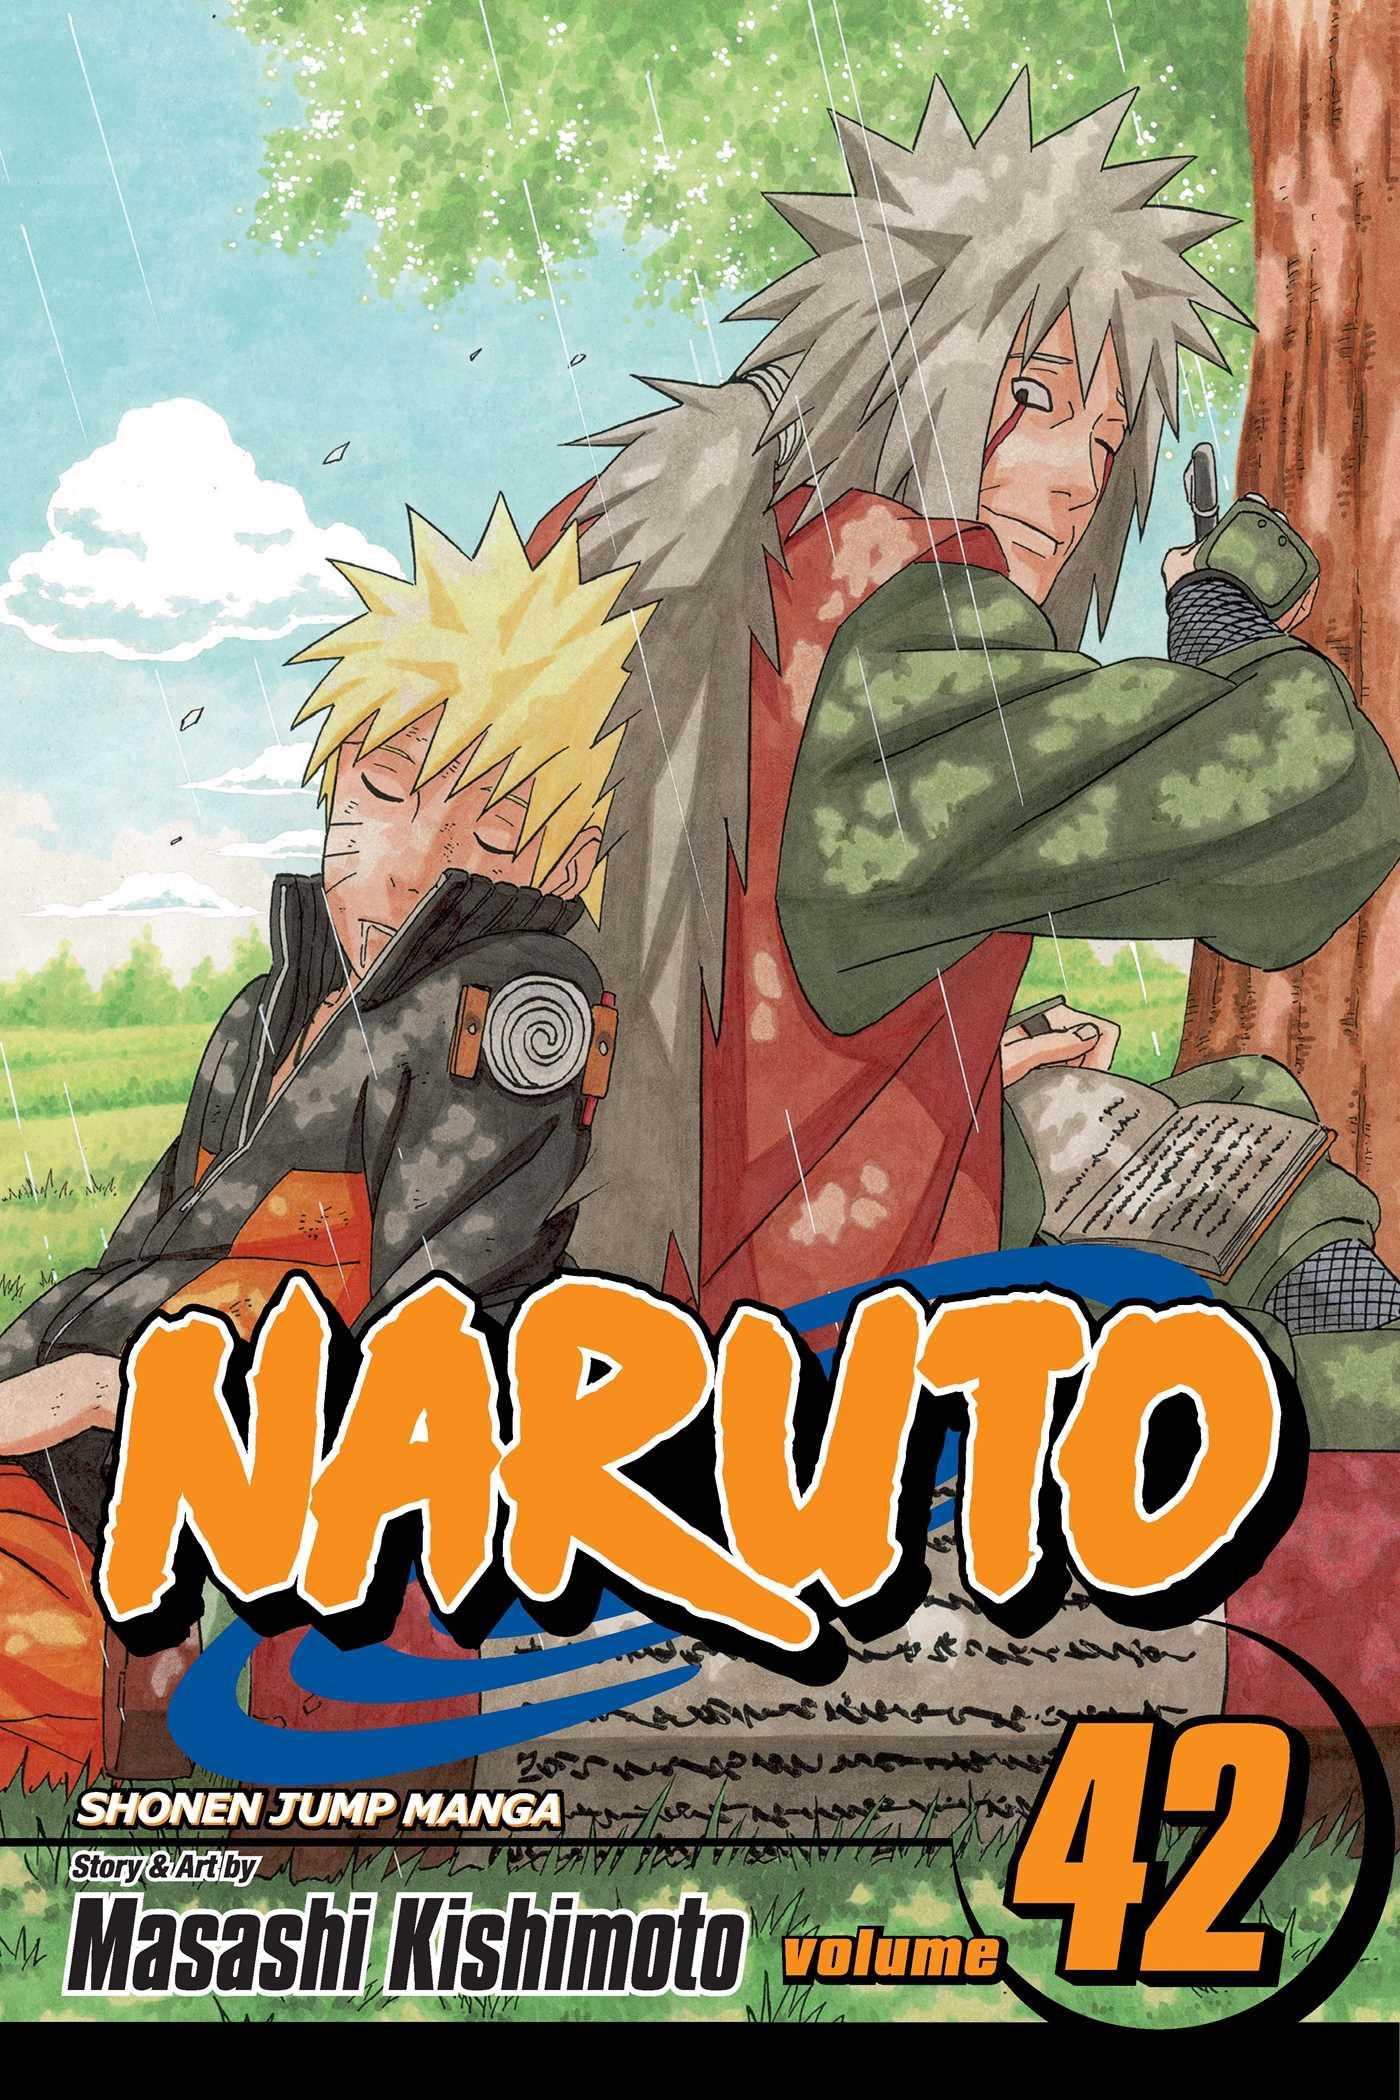 Naruto vol 42 9781421528434 hr